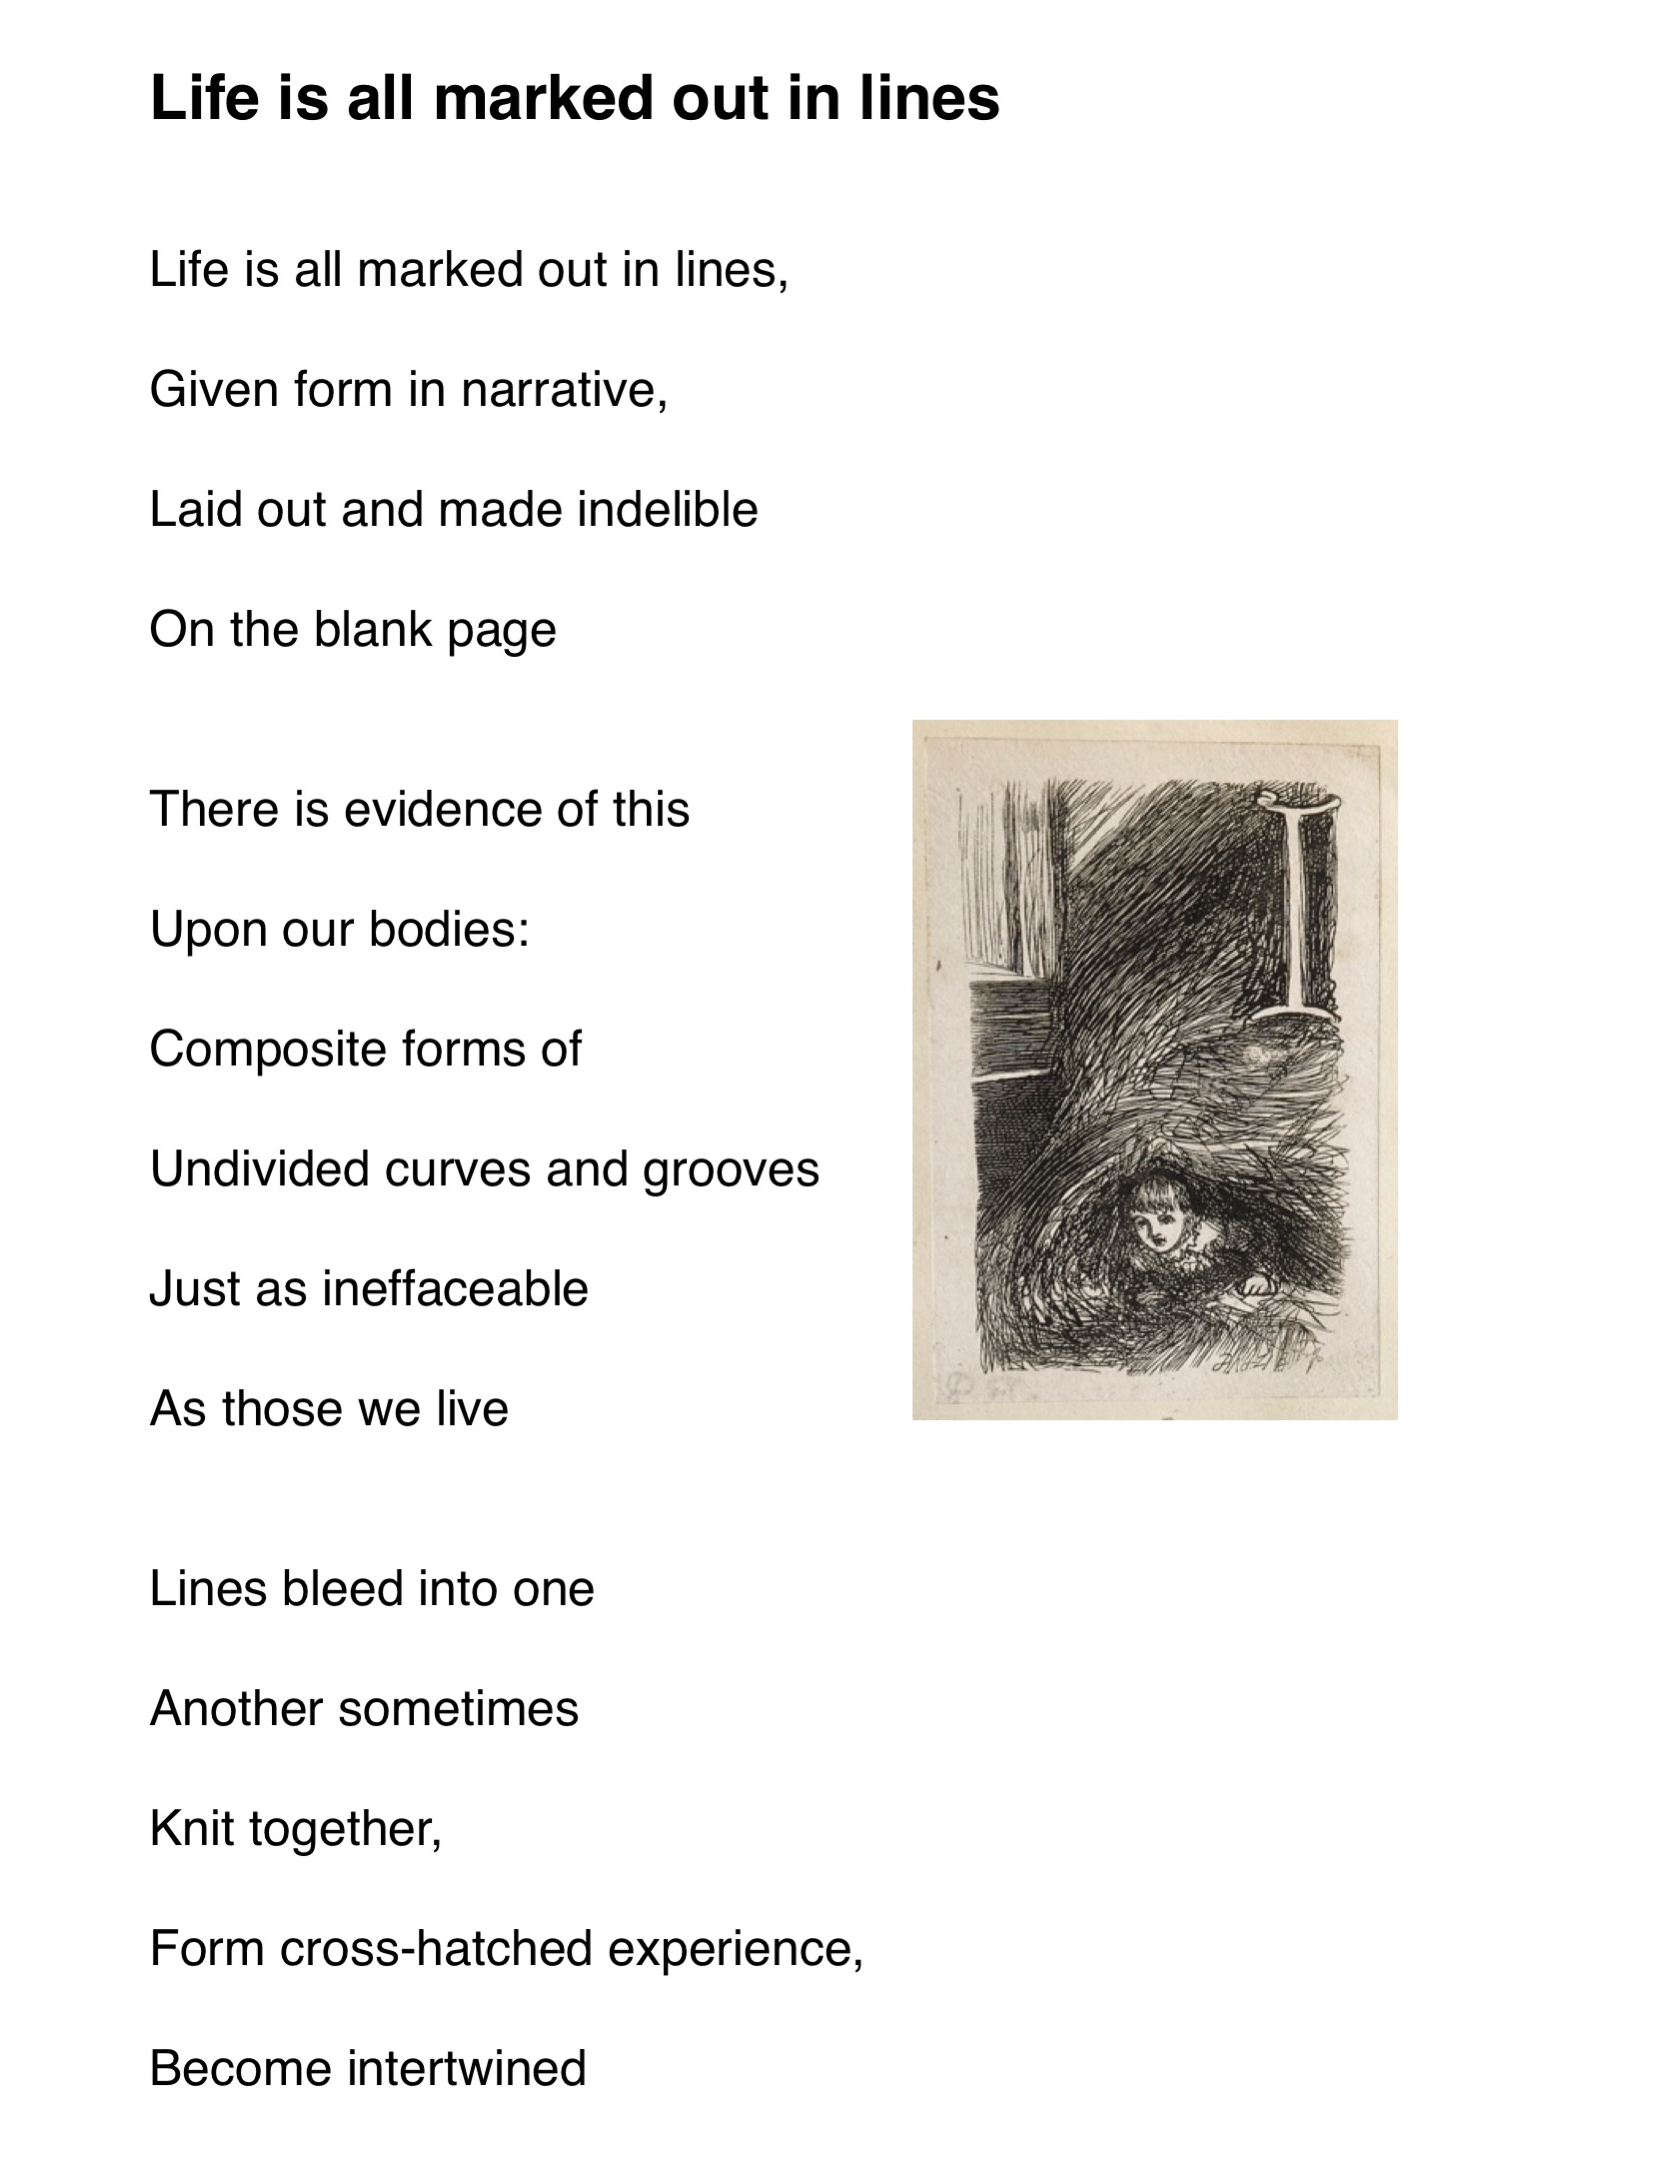 Life is all marked out in lines, by George Clutterbuck